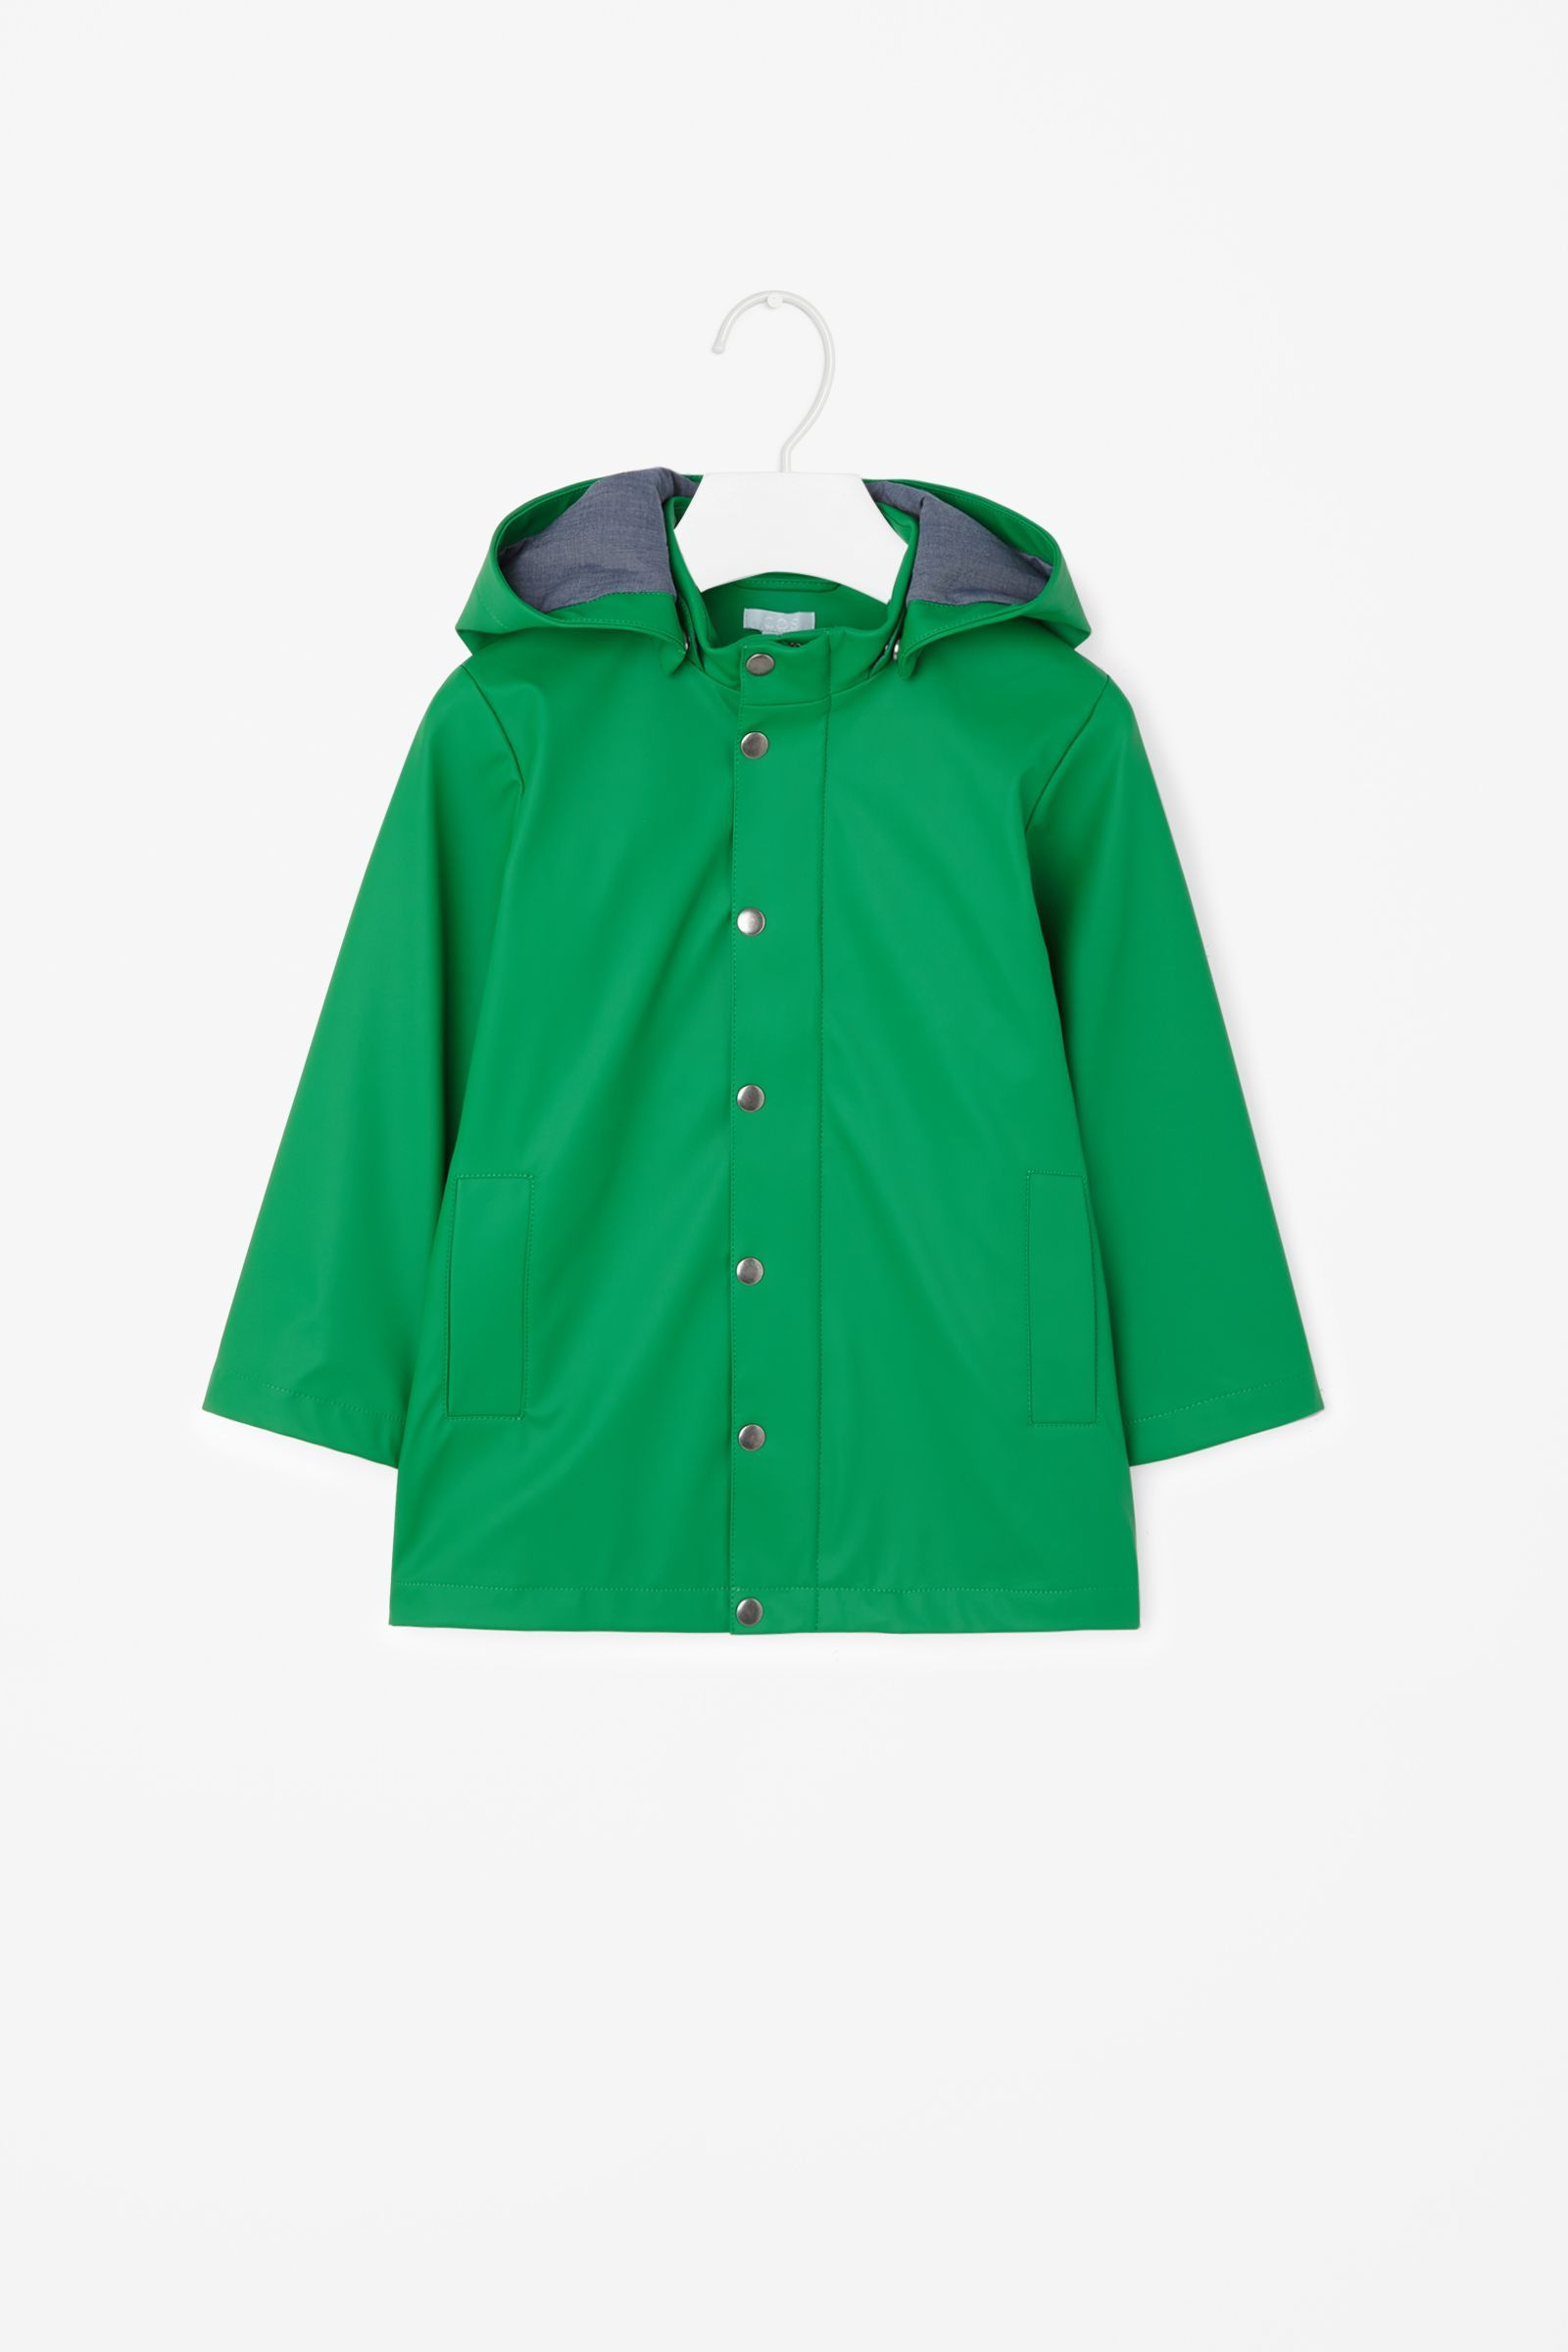 This raincoat is made from a water repellent technical fabric and a detachable hood. Fully lined with a soft cotton chambray, it has front flat pockets, a hidden zip-up and matte anti-nickel plated metal press buttons.